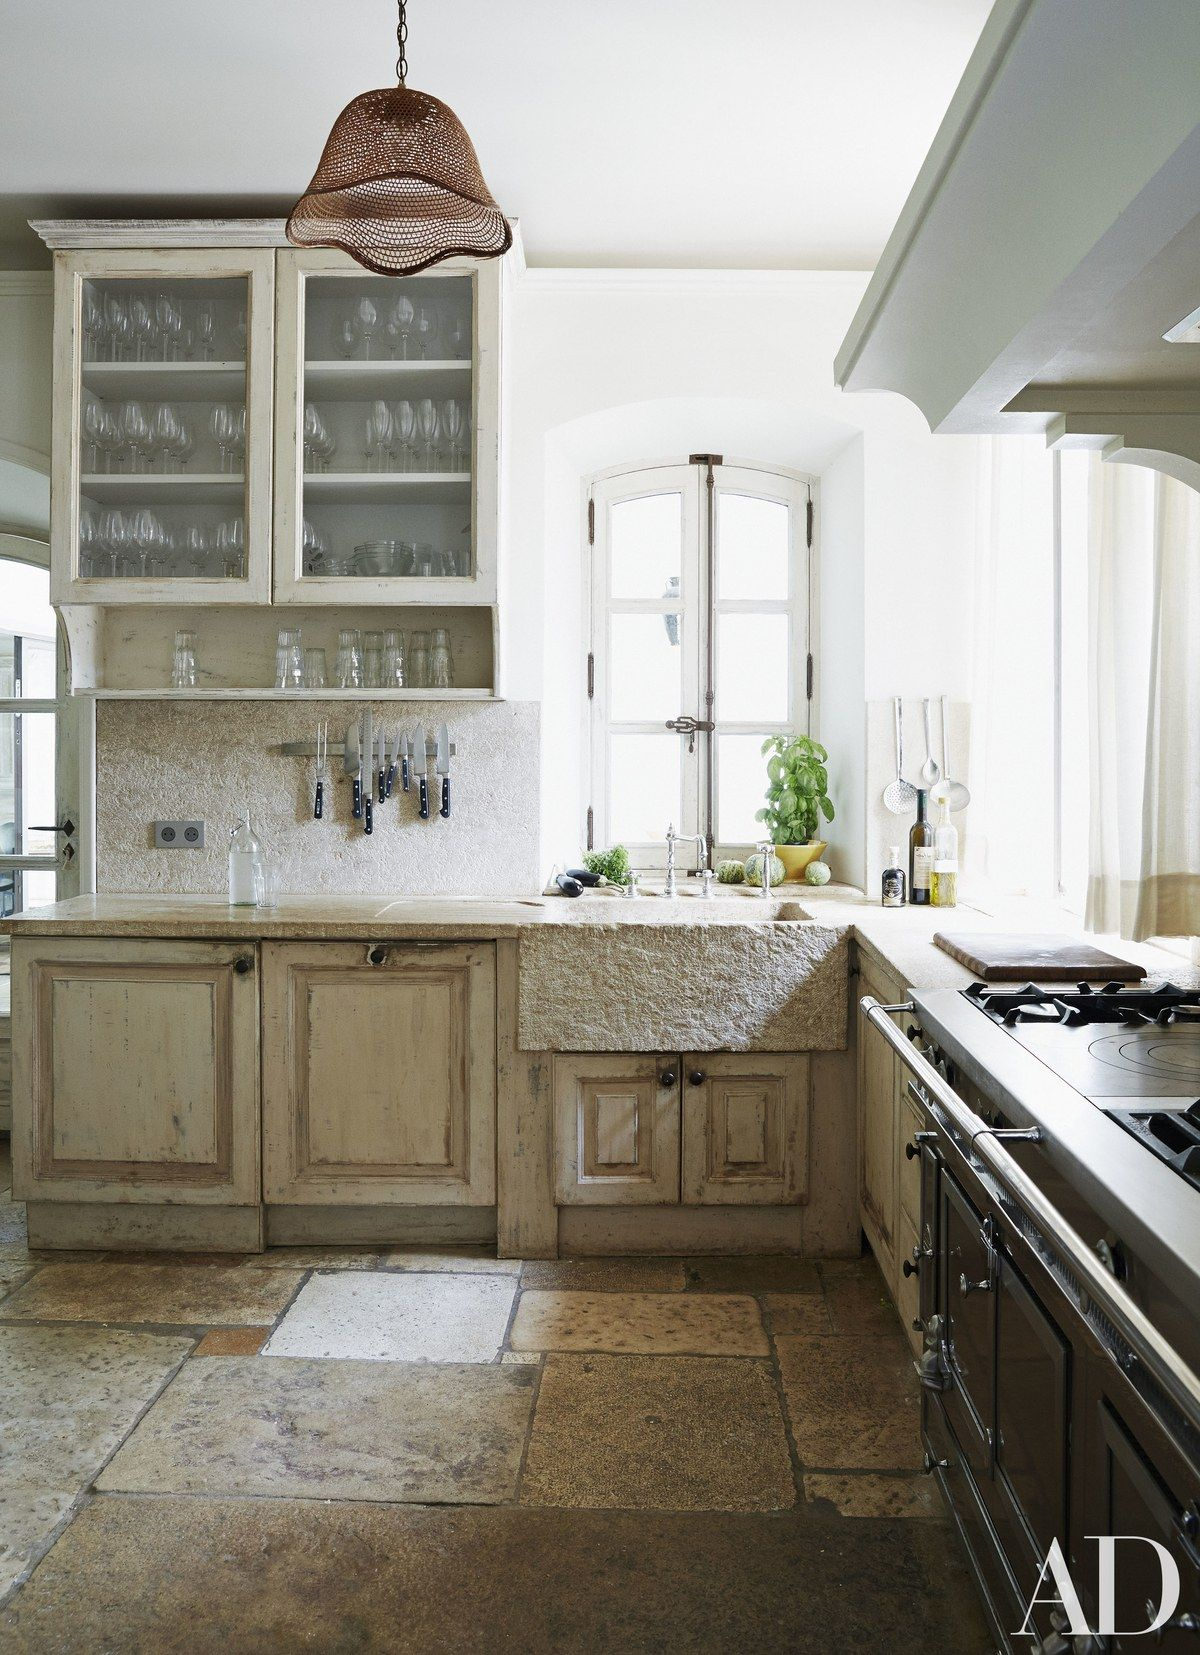 The kitchen features reclaimed stone pavers from Burgundy and a 17th ...